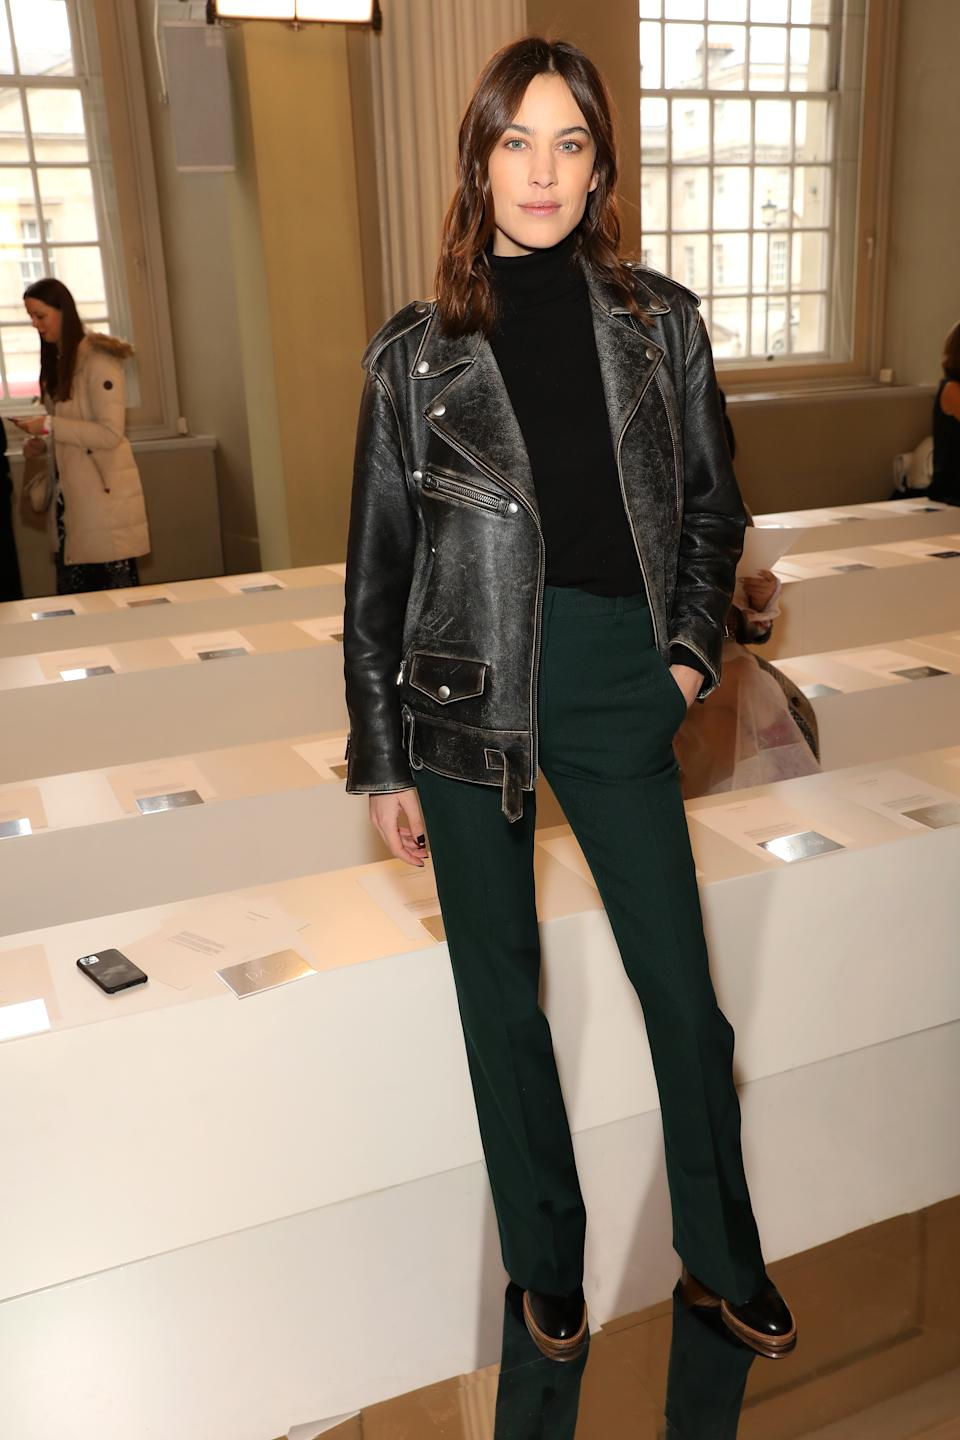 Alexa Chung had a front-row view of the fashion showcase [Image: Getty]